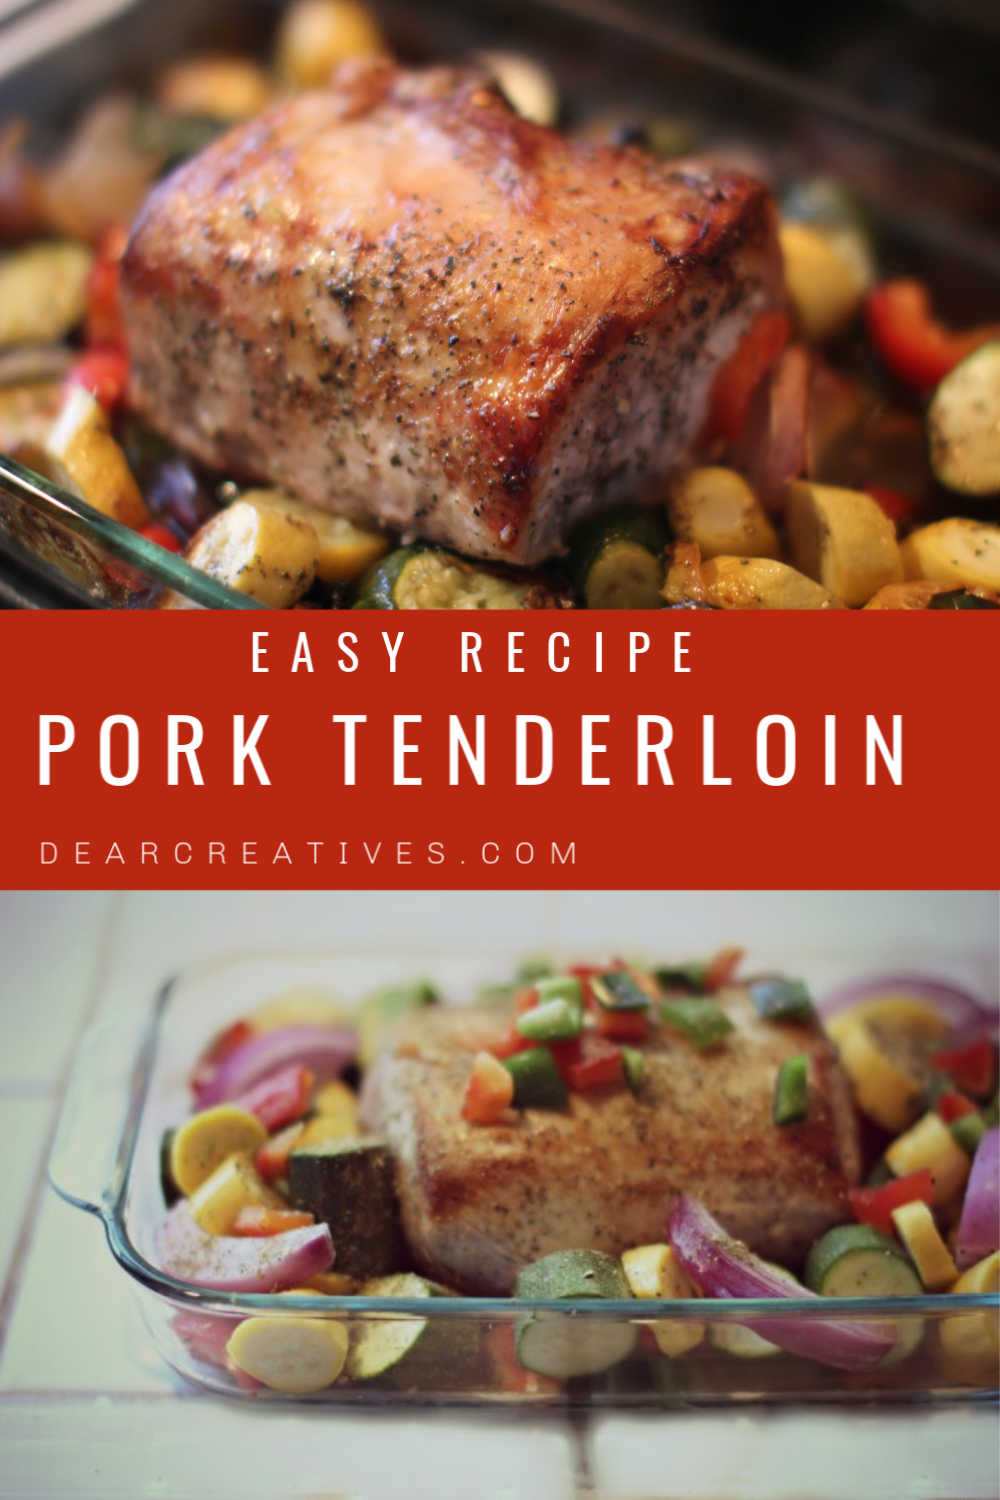 Pork Tenderloin Recipe Easy And Delicious